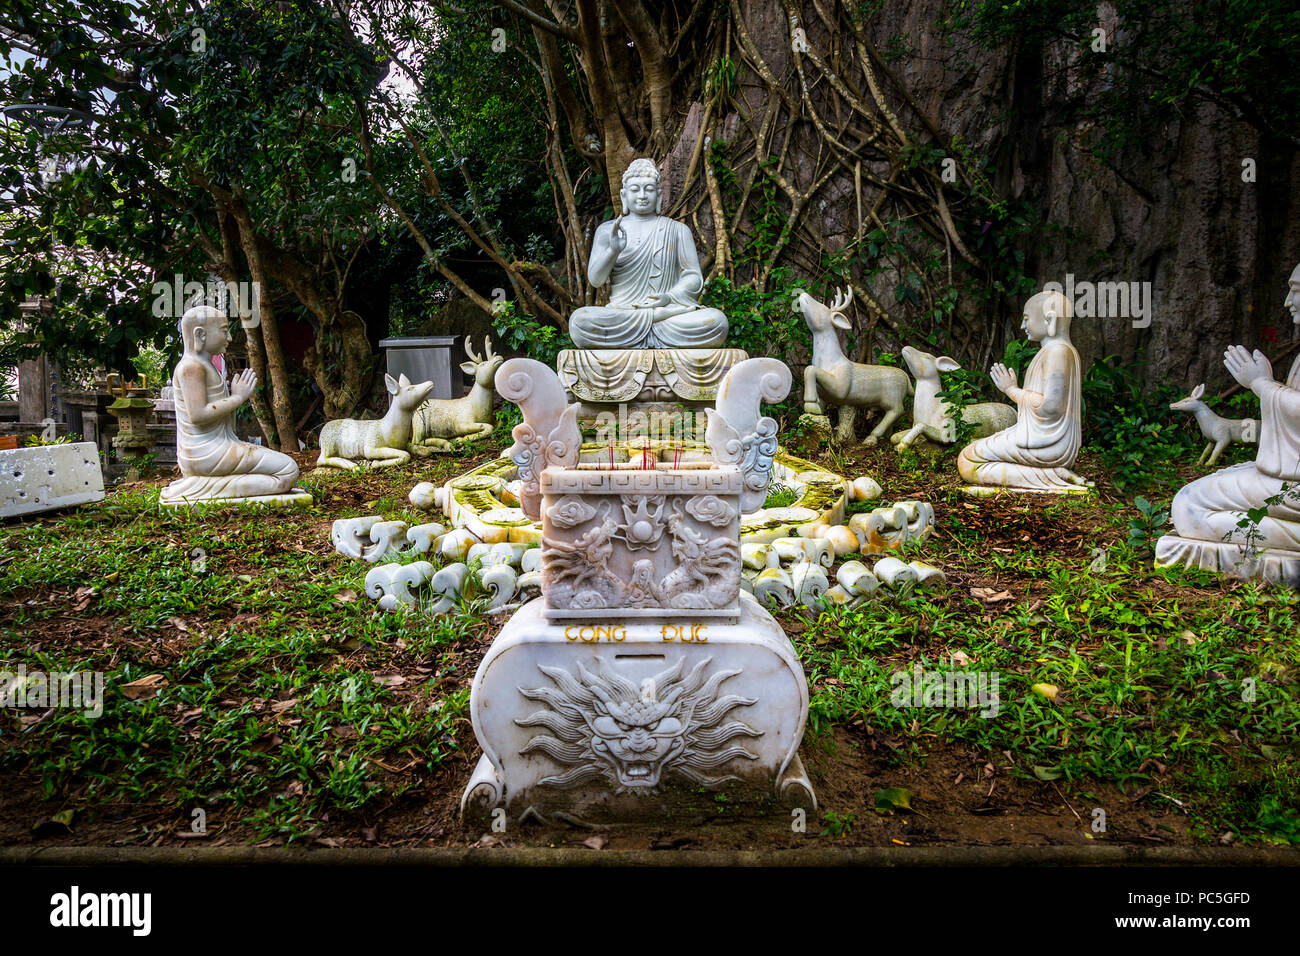 A group of animals and other Buddha's in a forest sourronding a bigger Buddha. - Stock Image